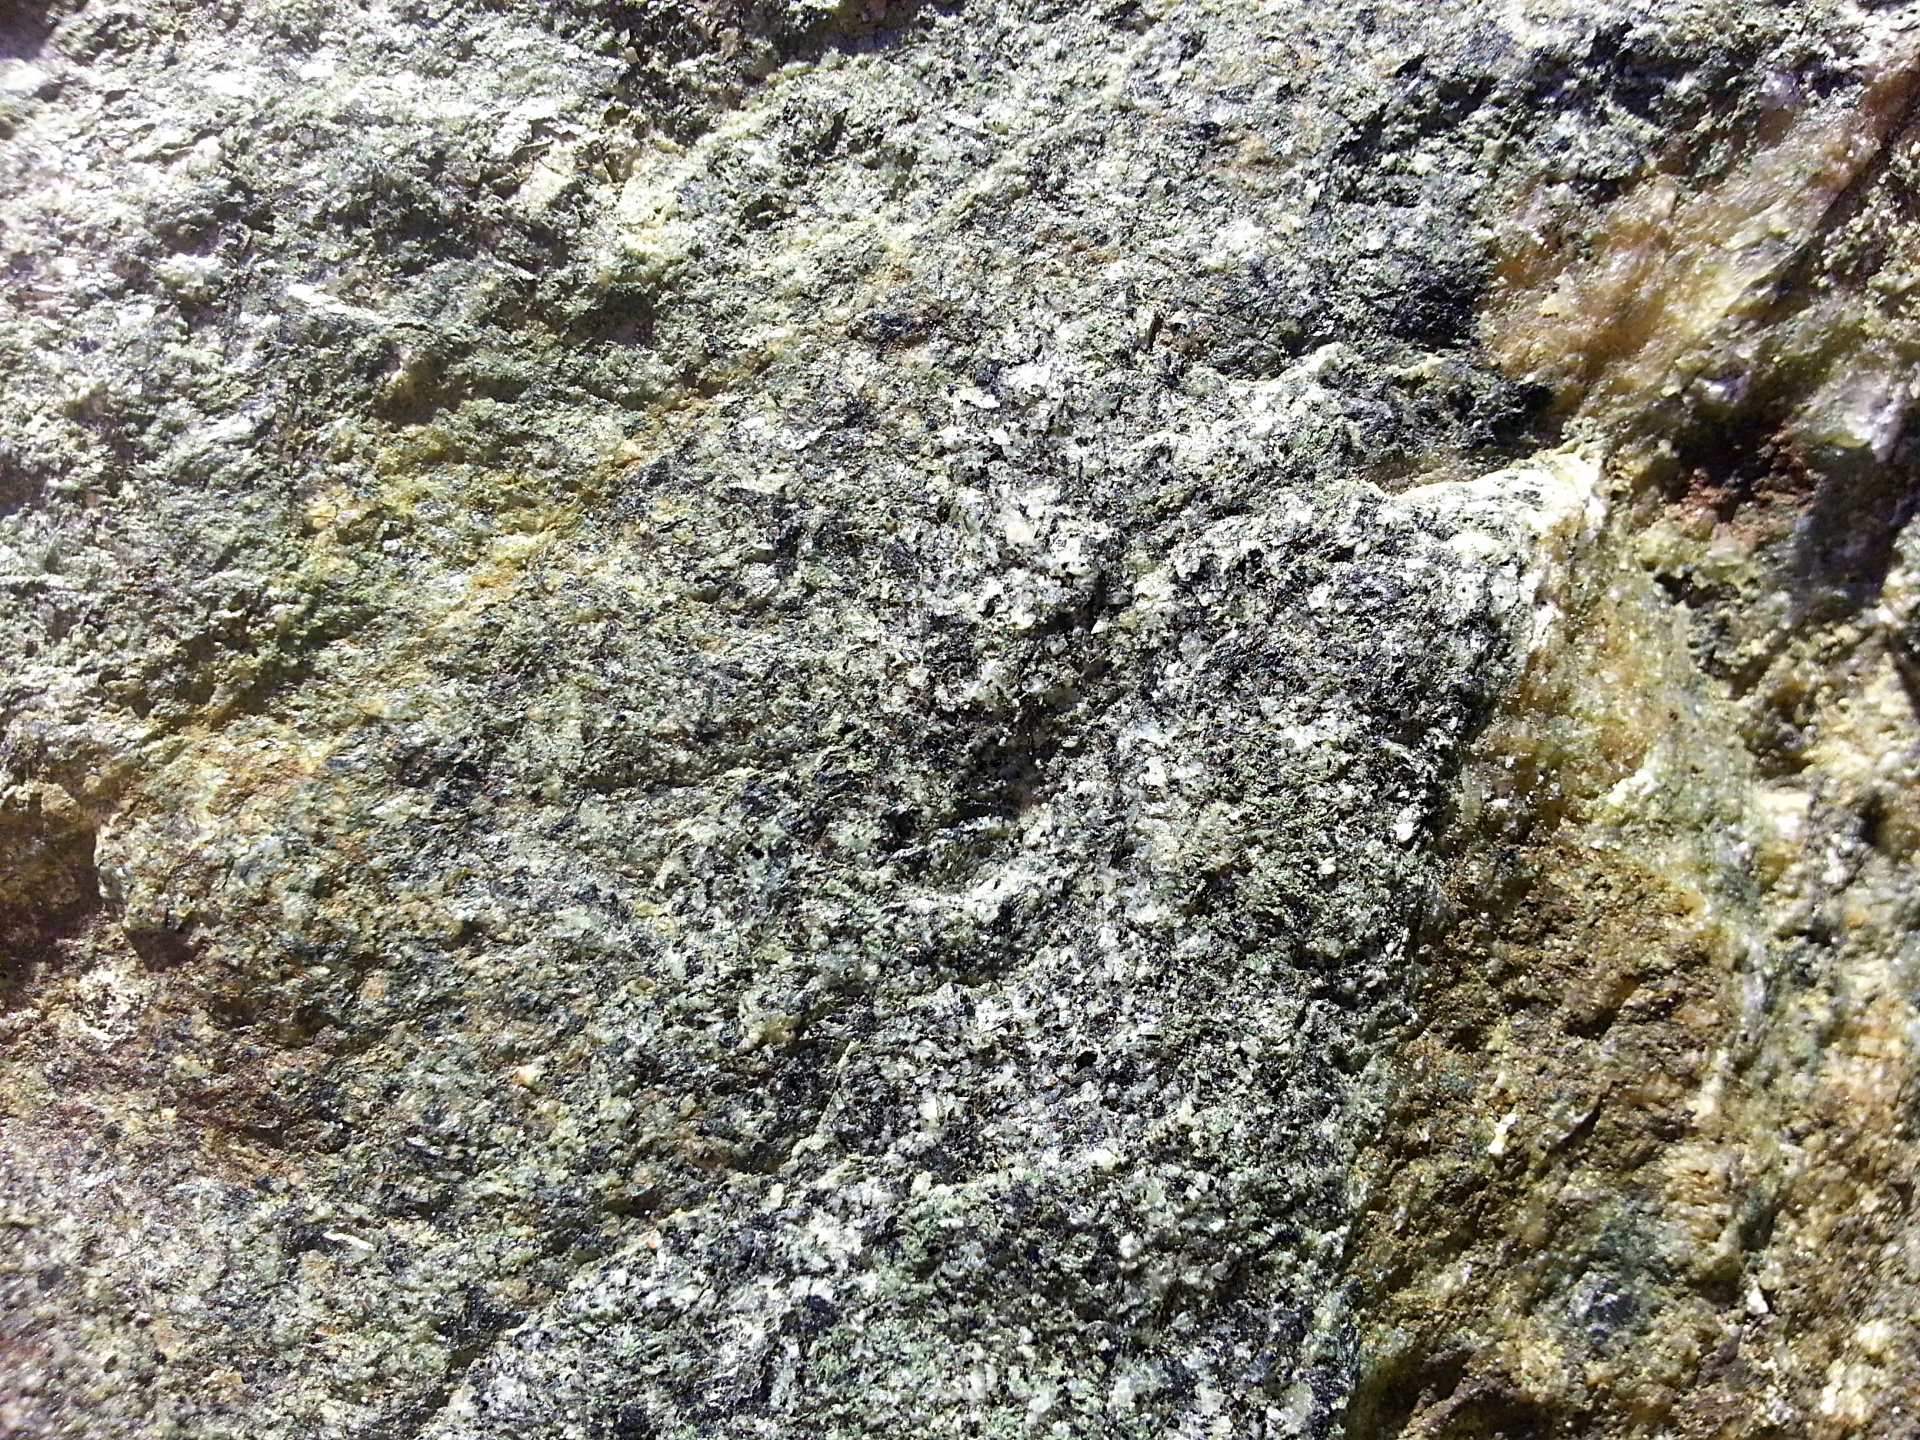 Rock Texture Free Stock Photo - Public Domain Pictures